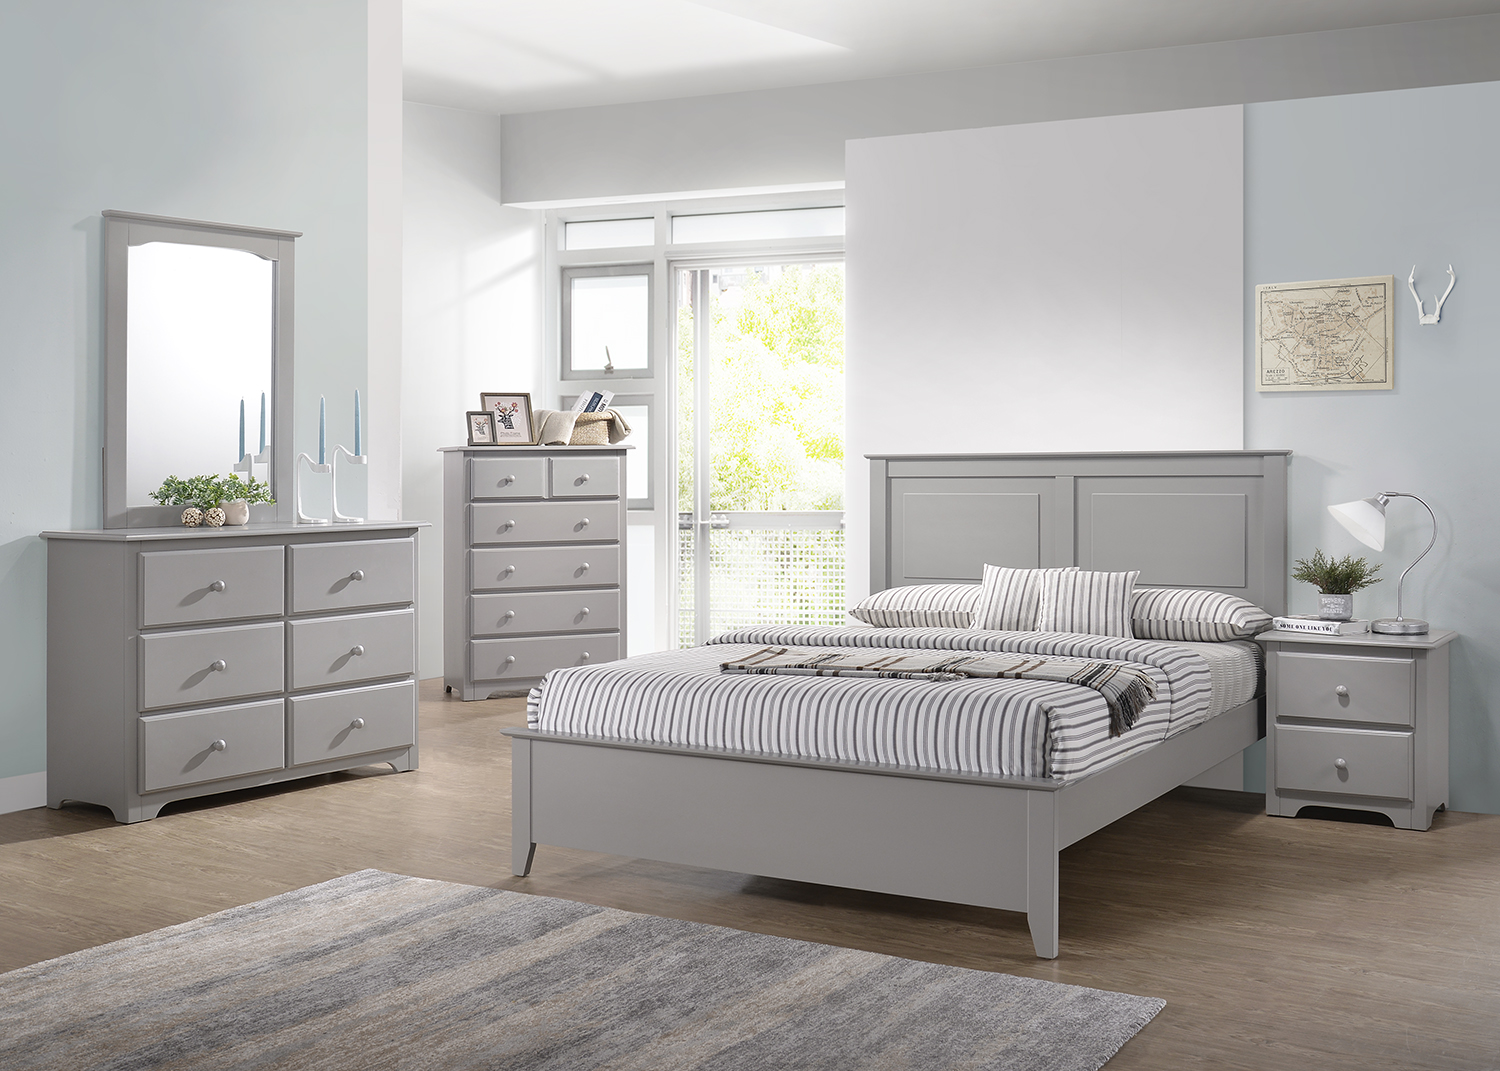 G48 Gray Queen Bed